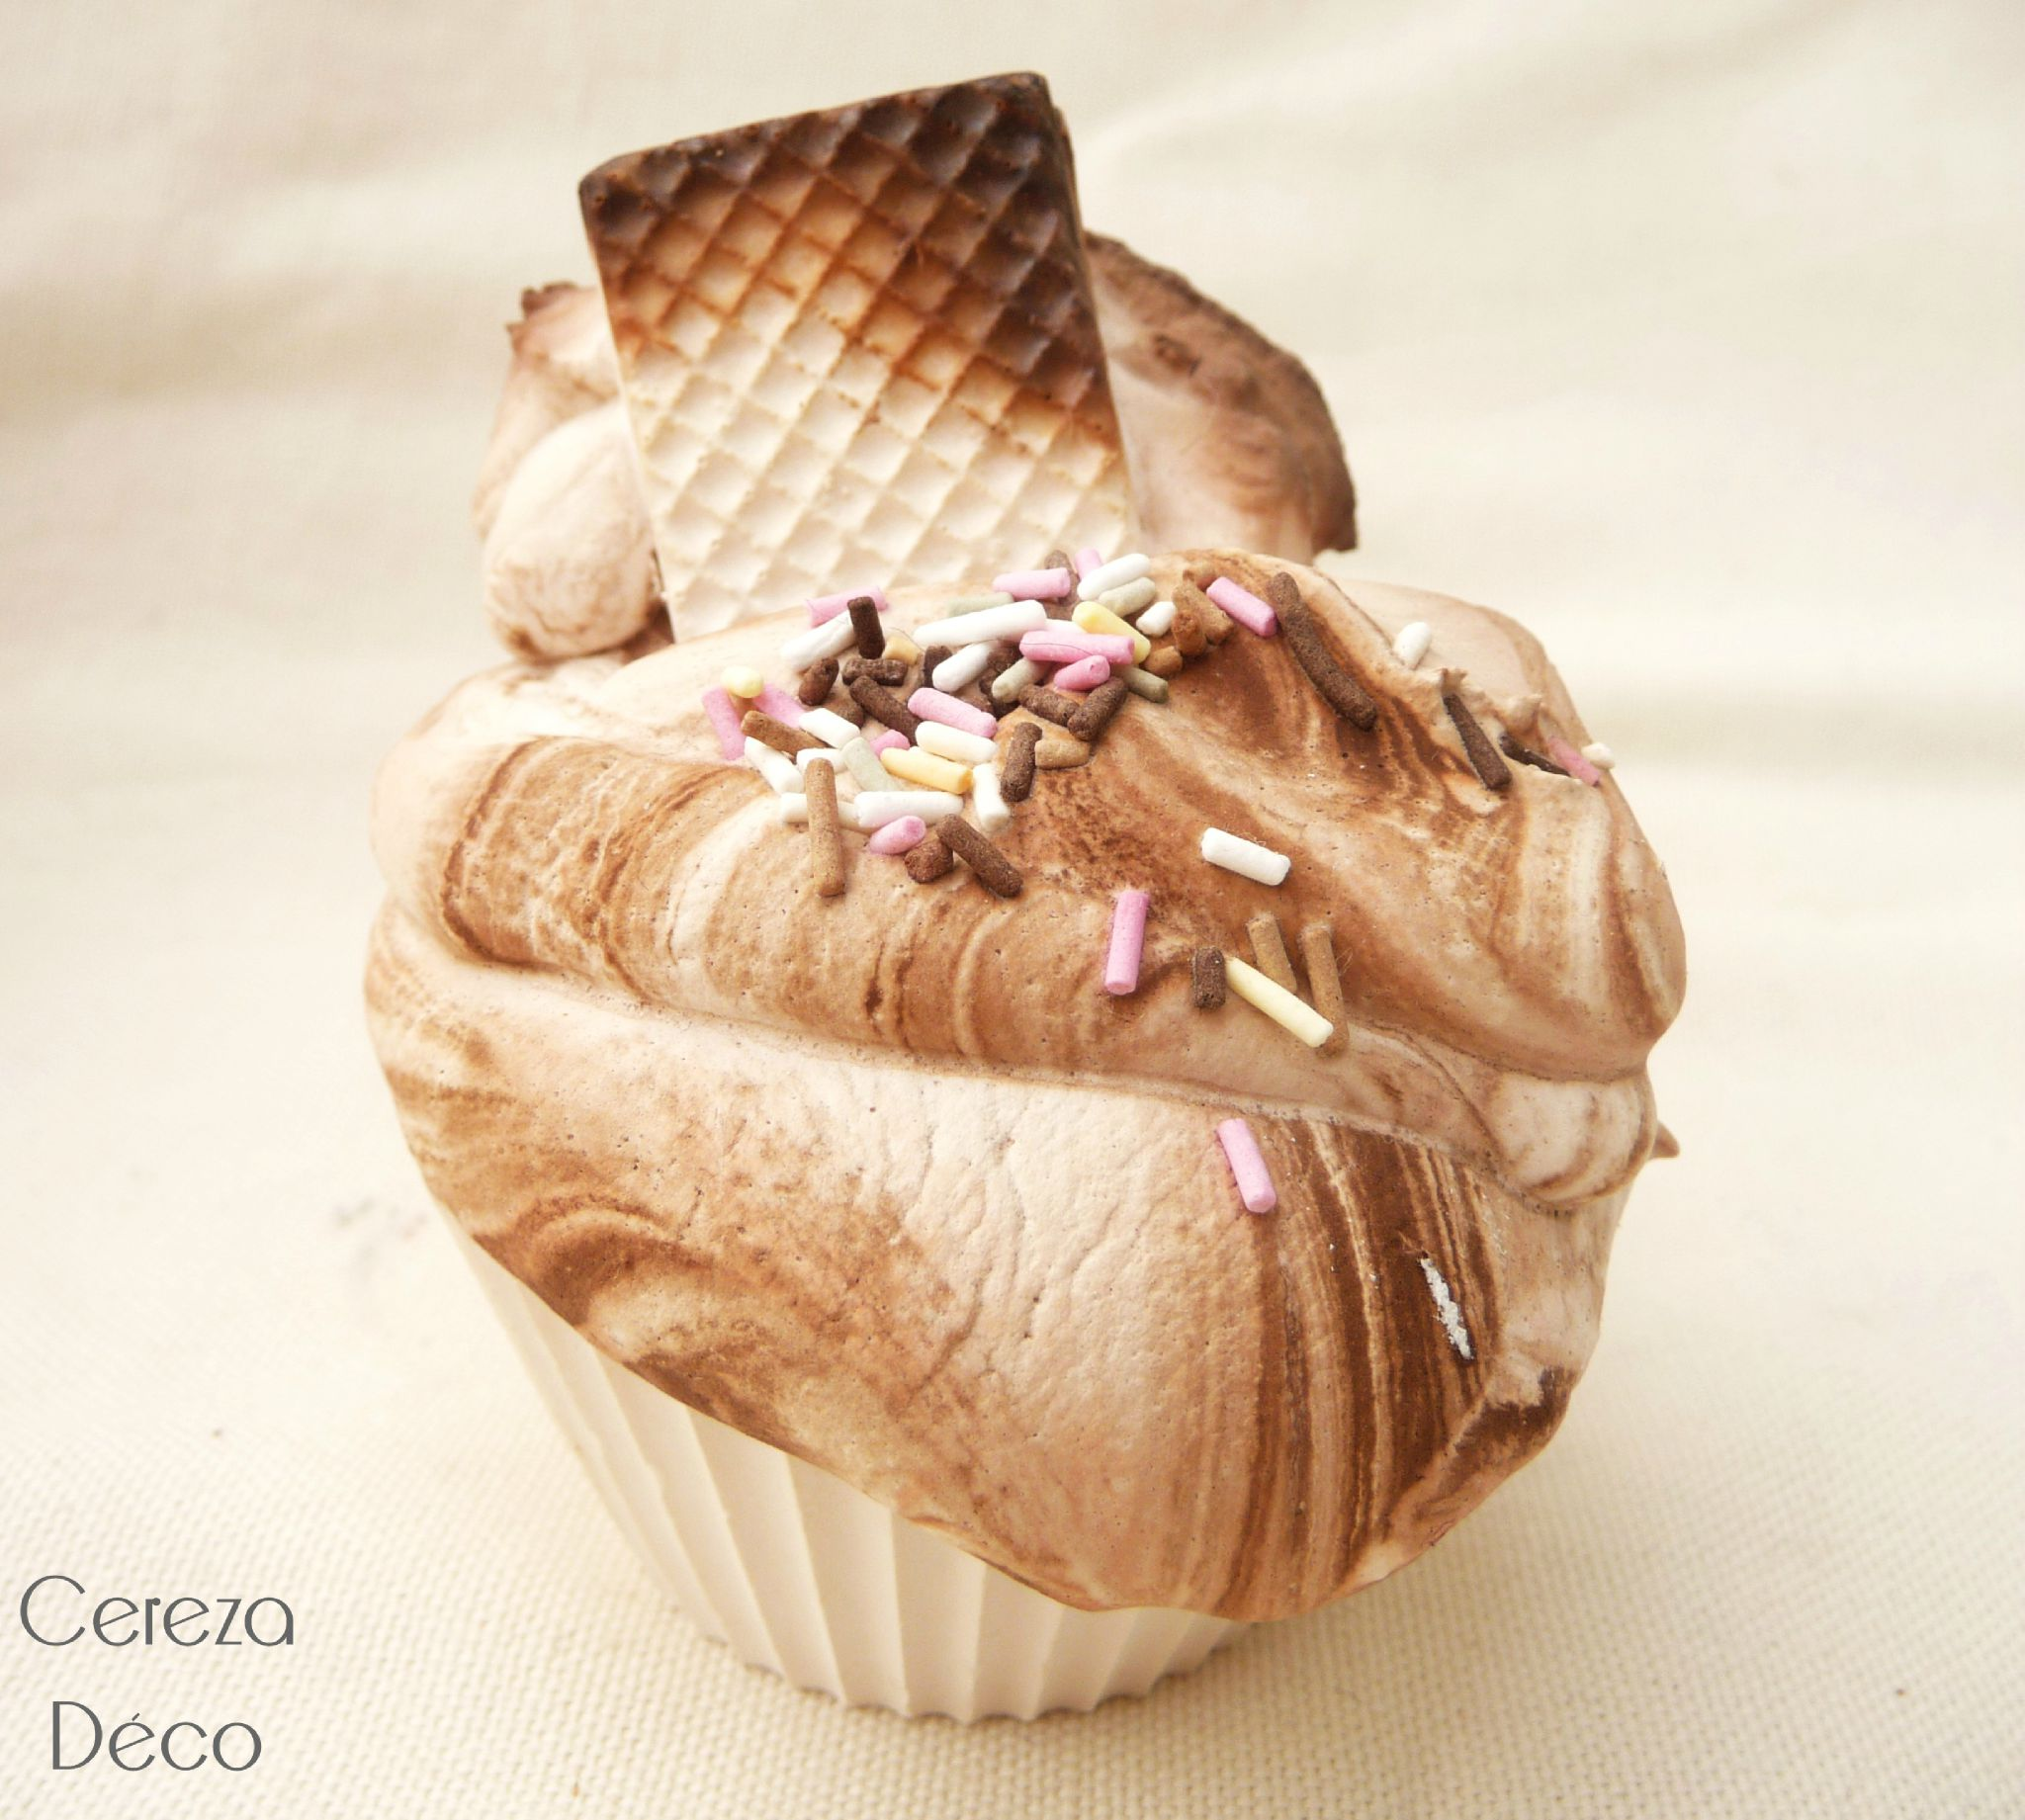 Décoration Mariage Gourmandise Chic Mariage Gourmandise Sweet Table Cupcake Parfum Ambiance Beige